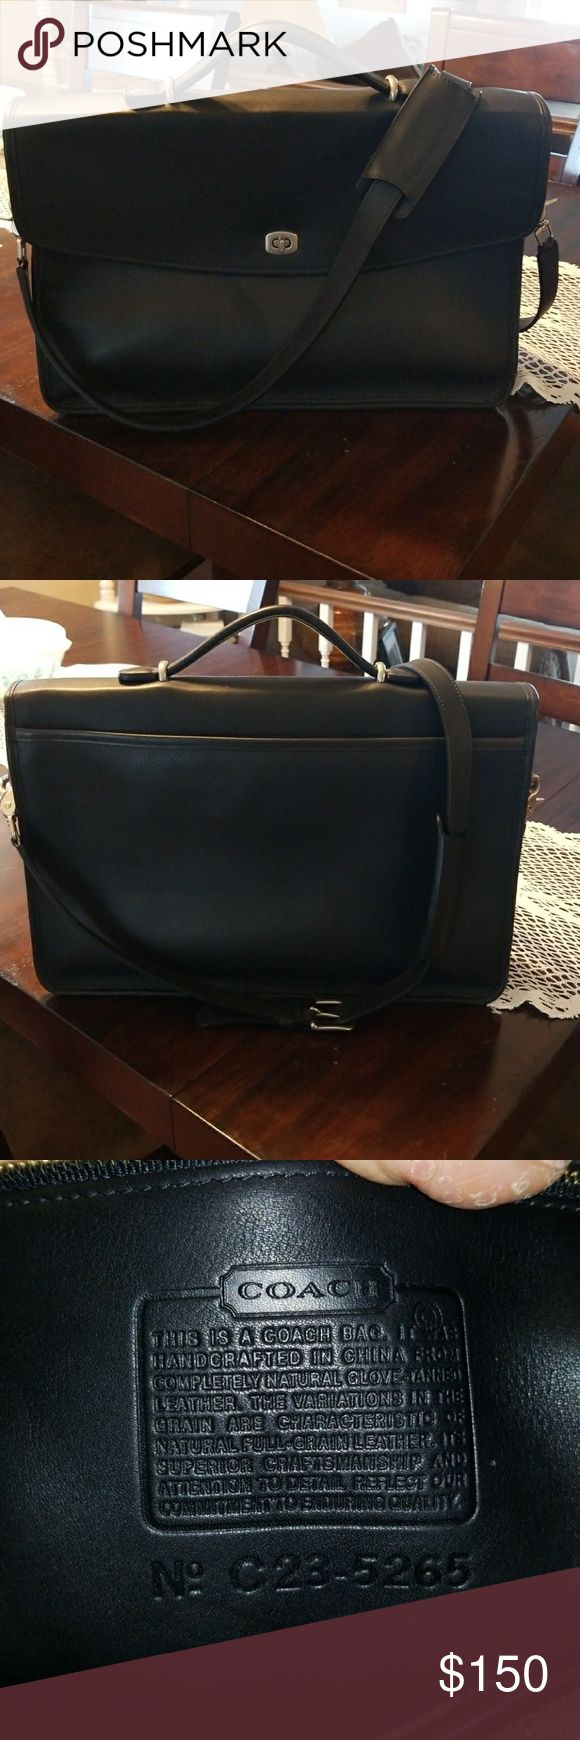 Beautiful Vintage Coach Briefcase 5265 Make an offer! Excellent Condition.  Hardware looks like it is new.  Leather is gorgeous.  Great vintage bag! Coach Bags Briefcases